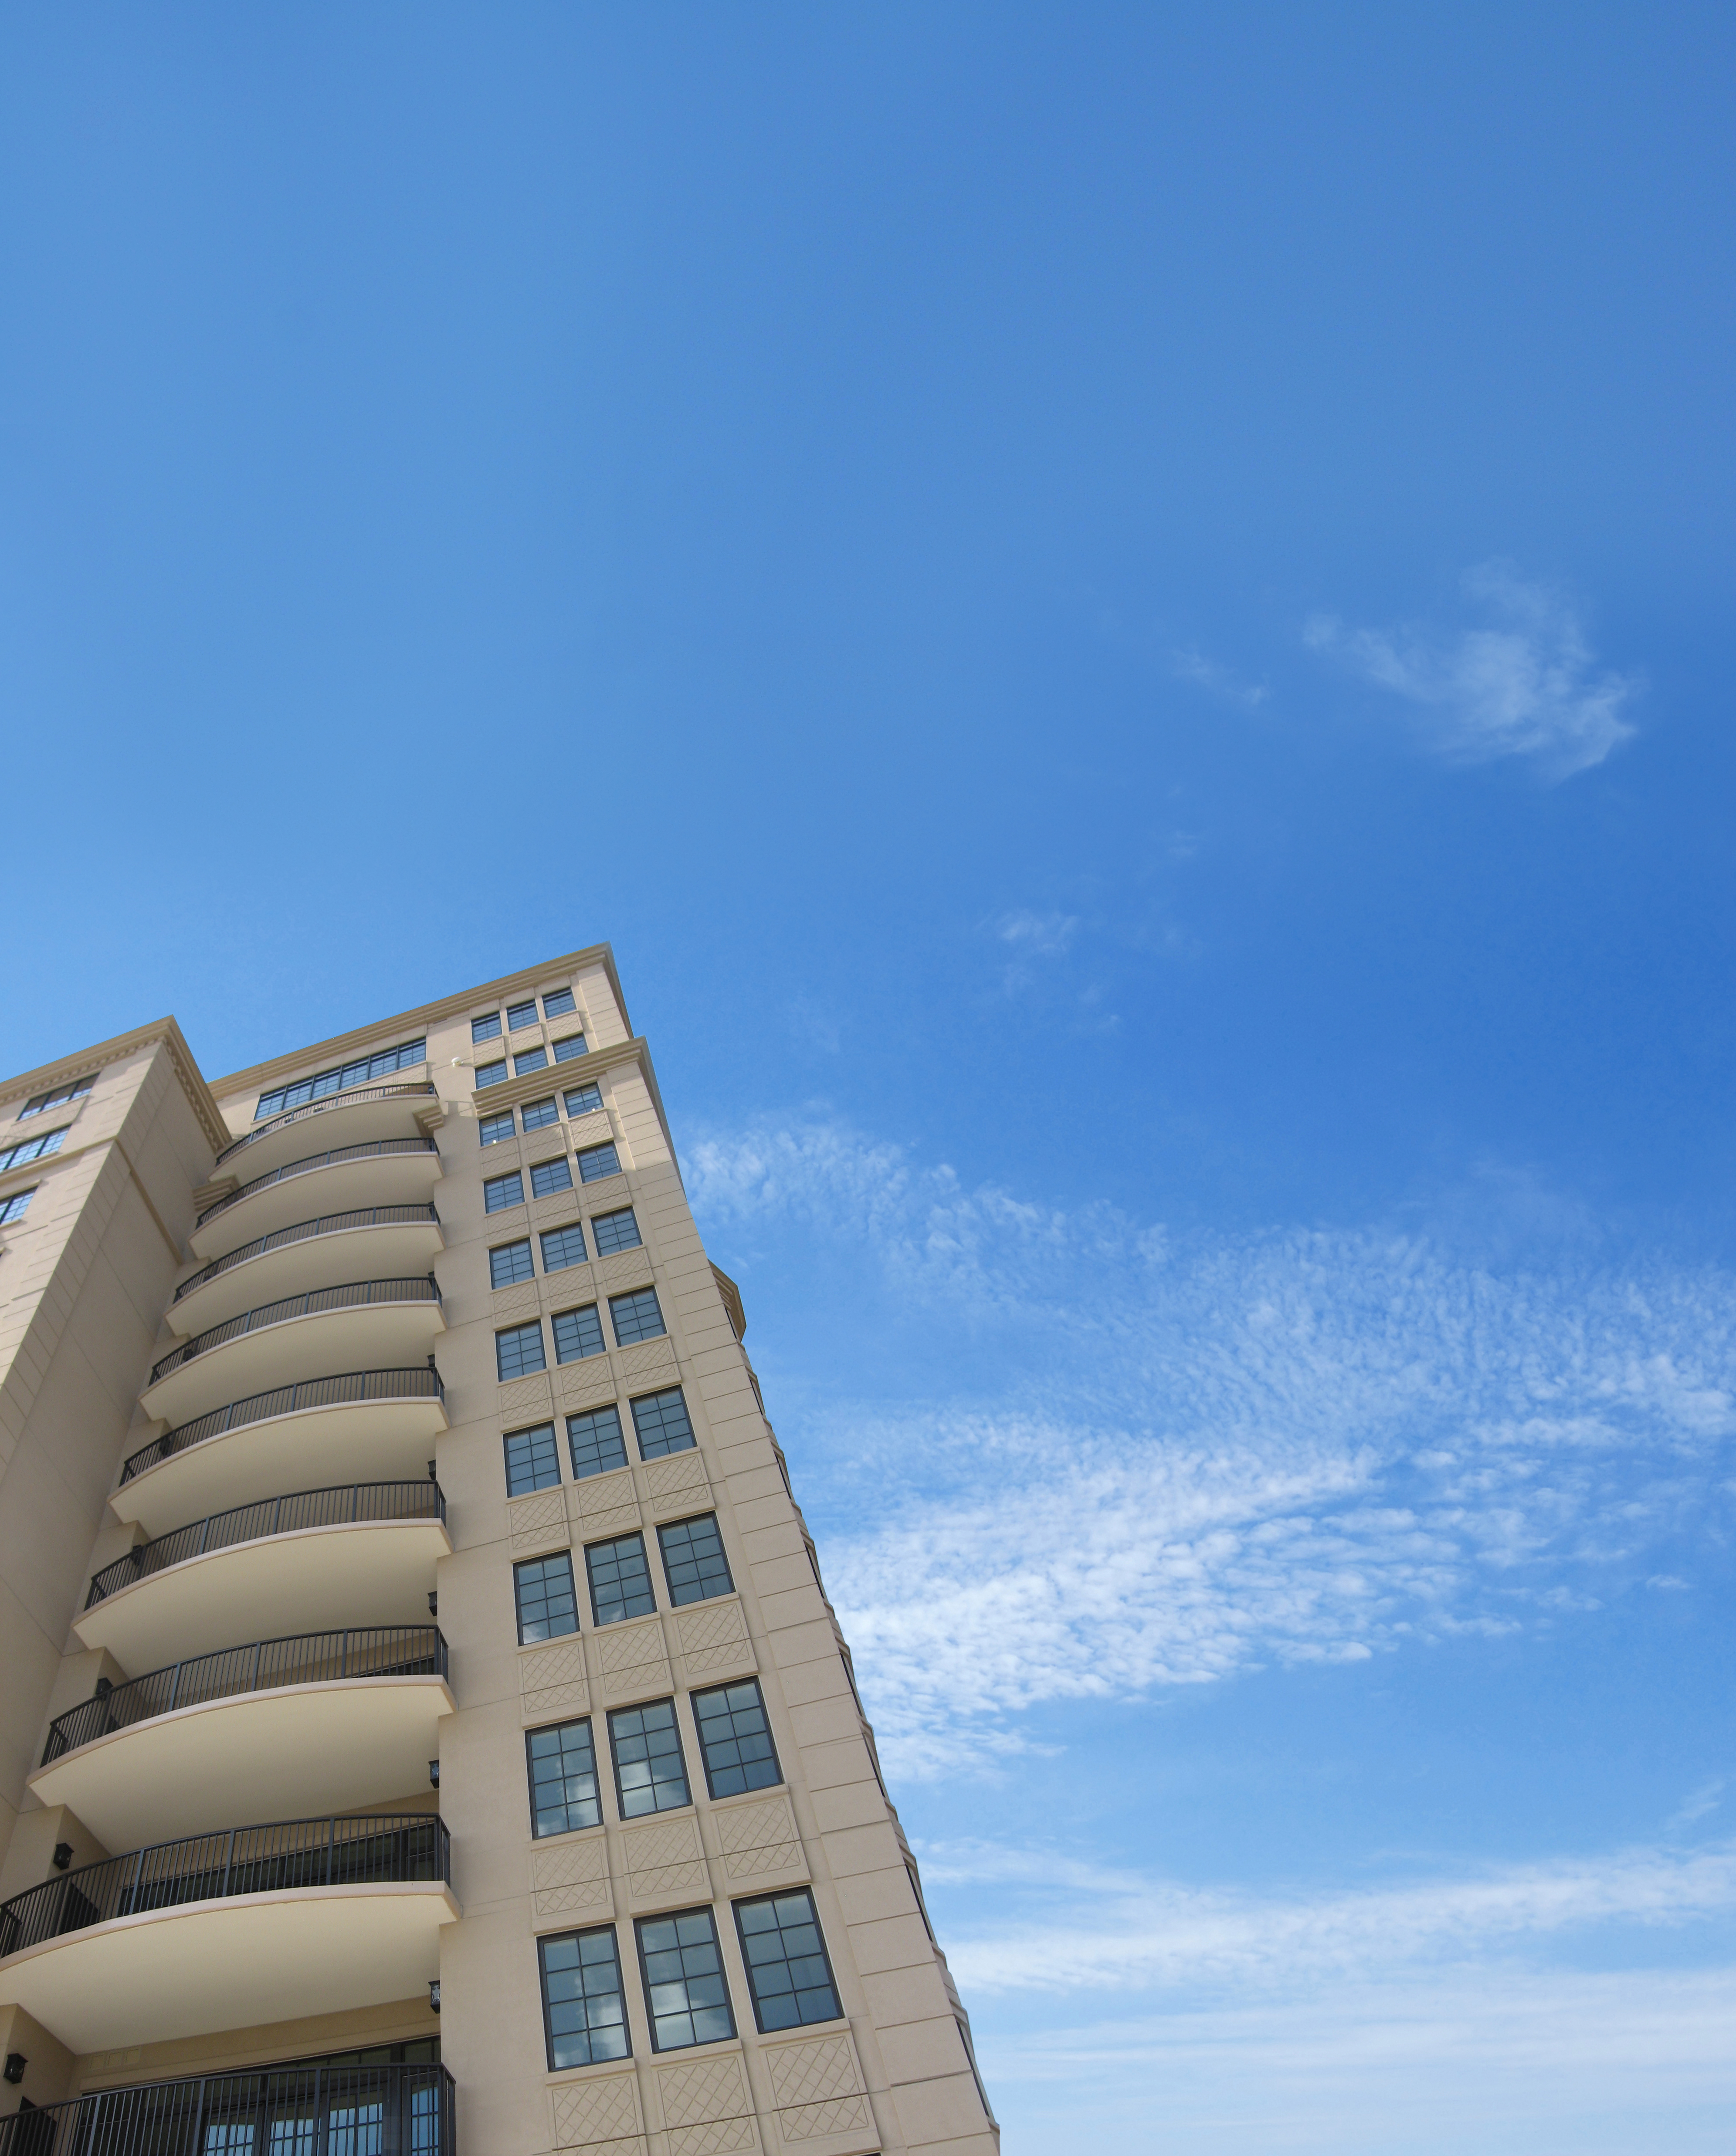 High rise building with a high build protective coating intended to withstand natural elements.